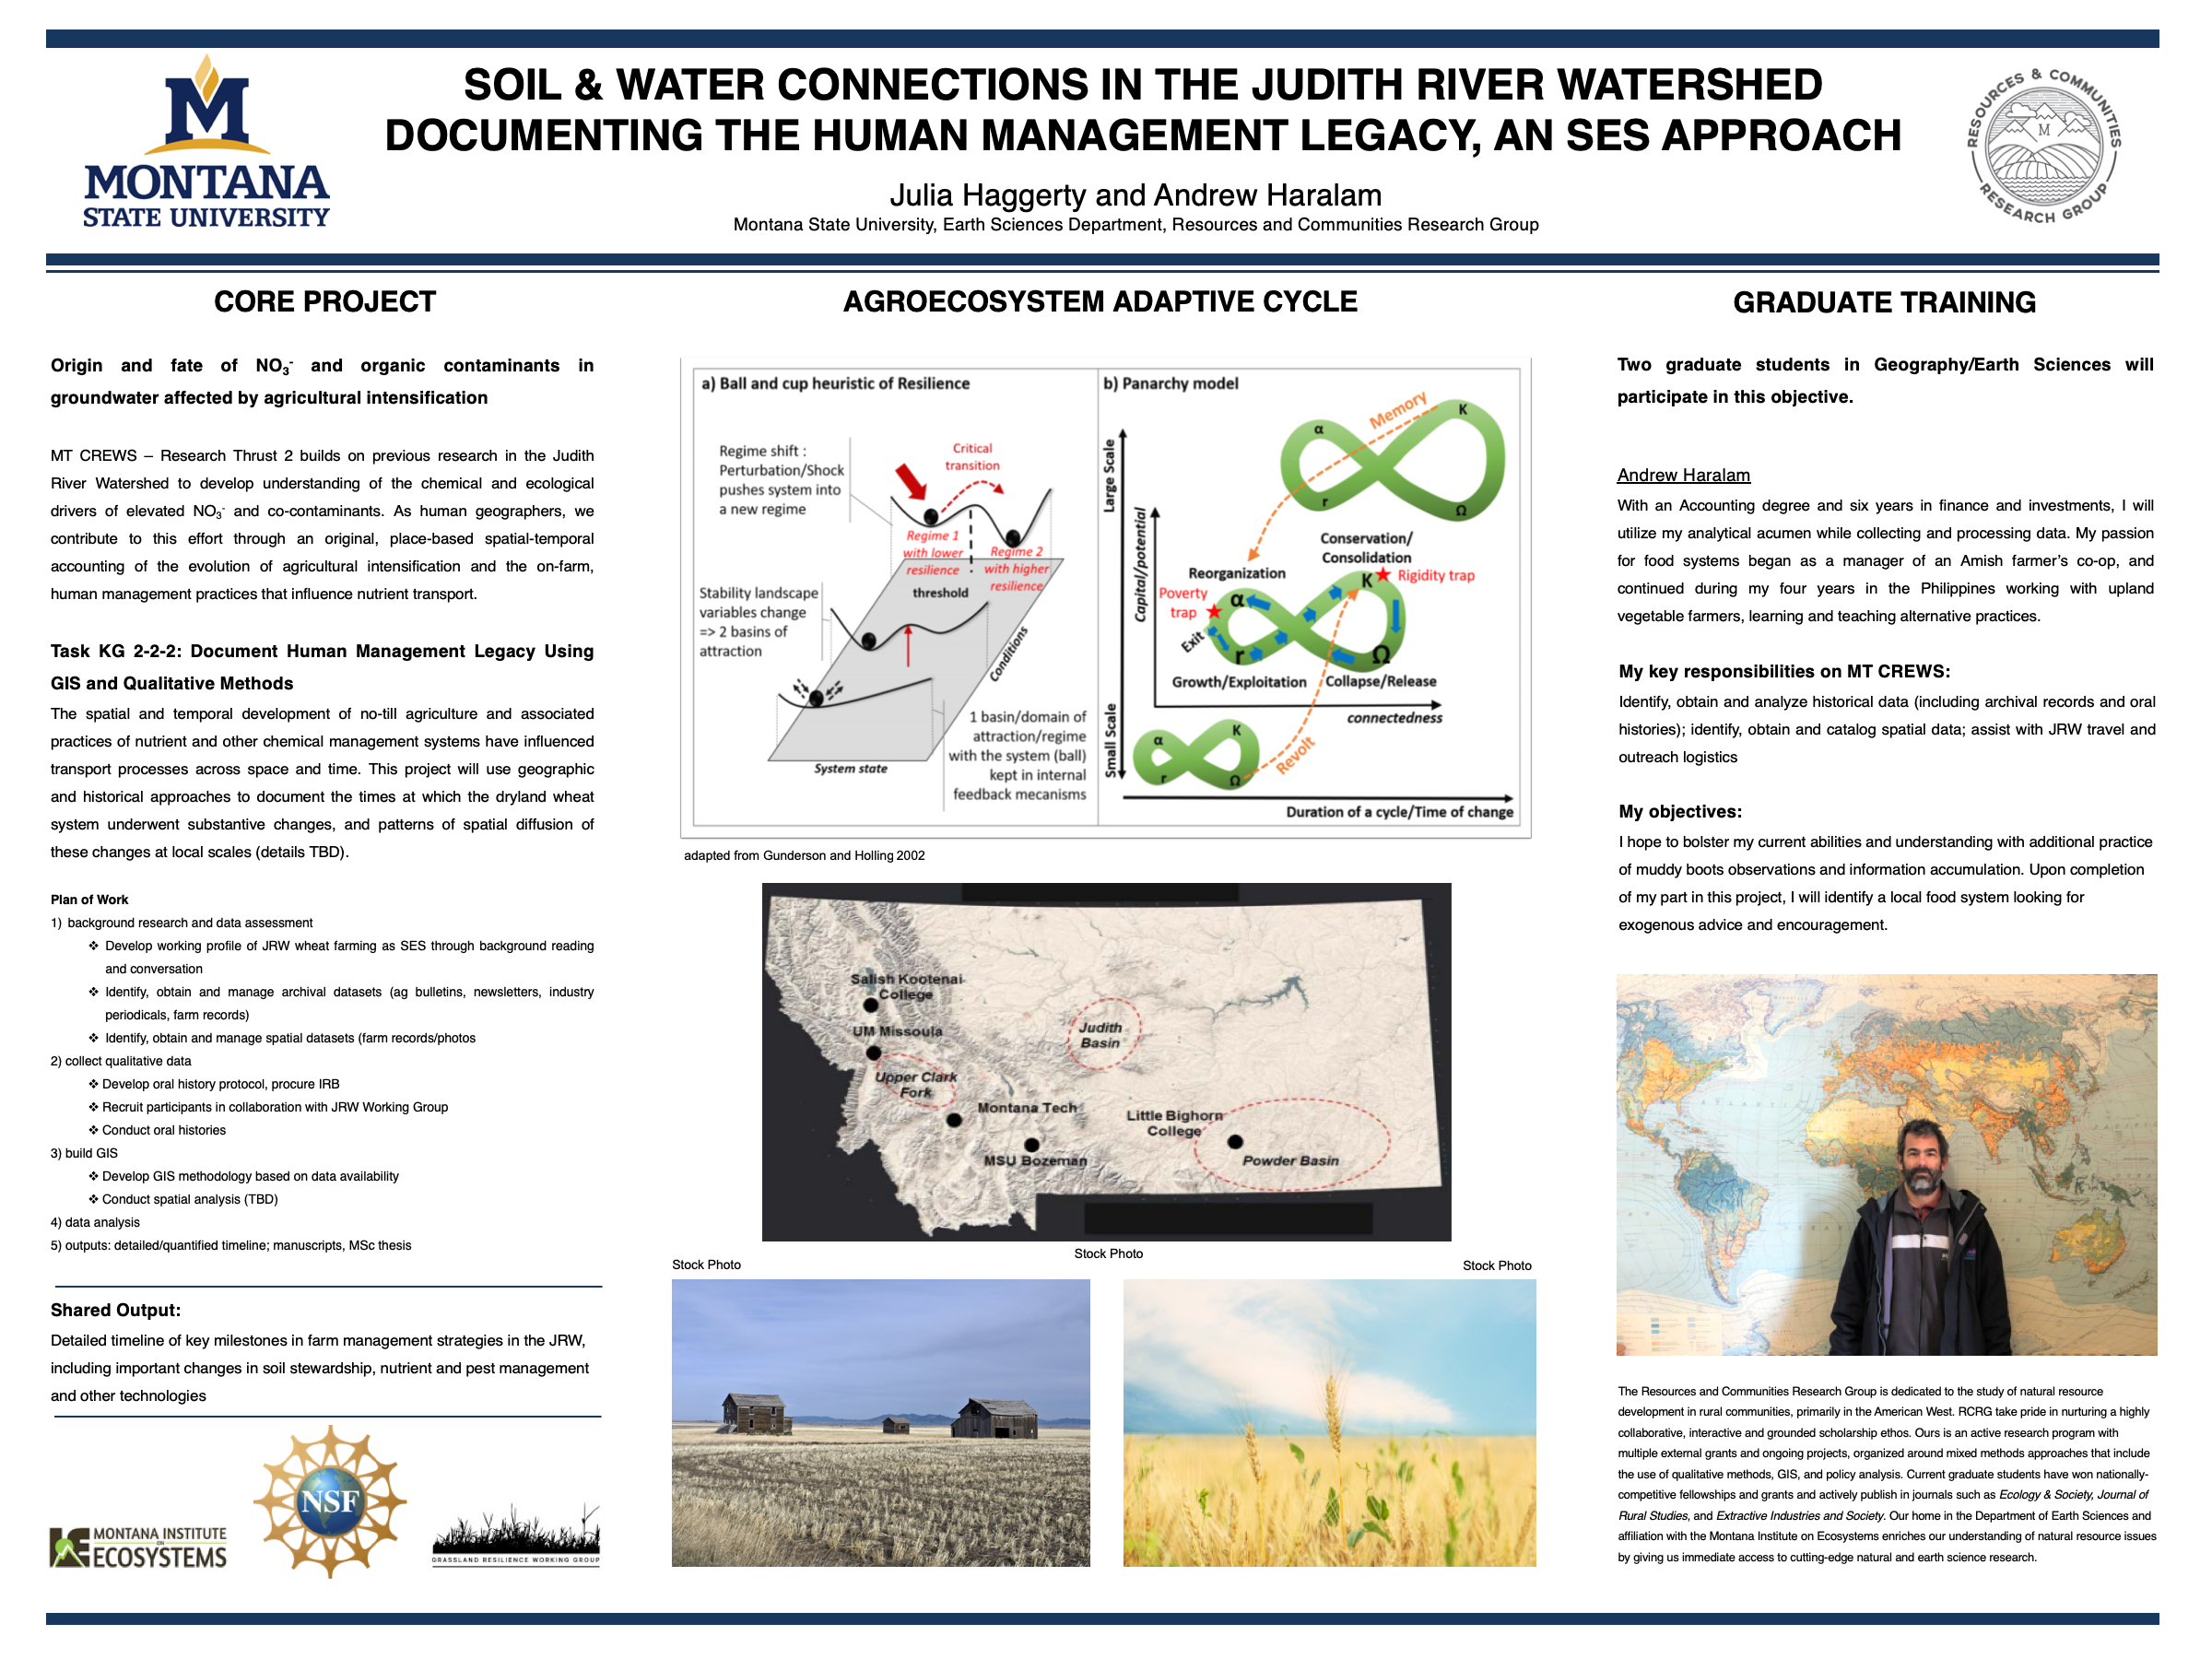 Soil & Water Connection in the Judith River Watershed Documenting the Human Management Legacy, an SES Approach